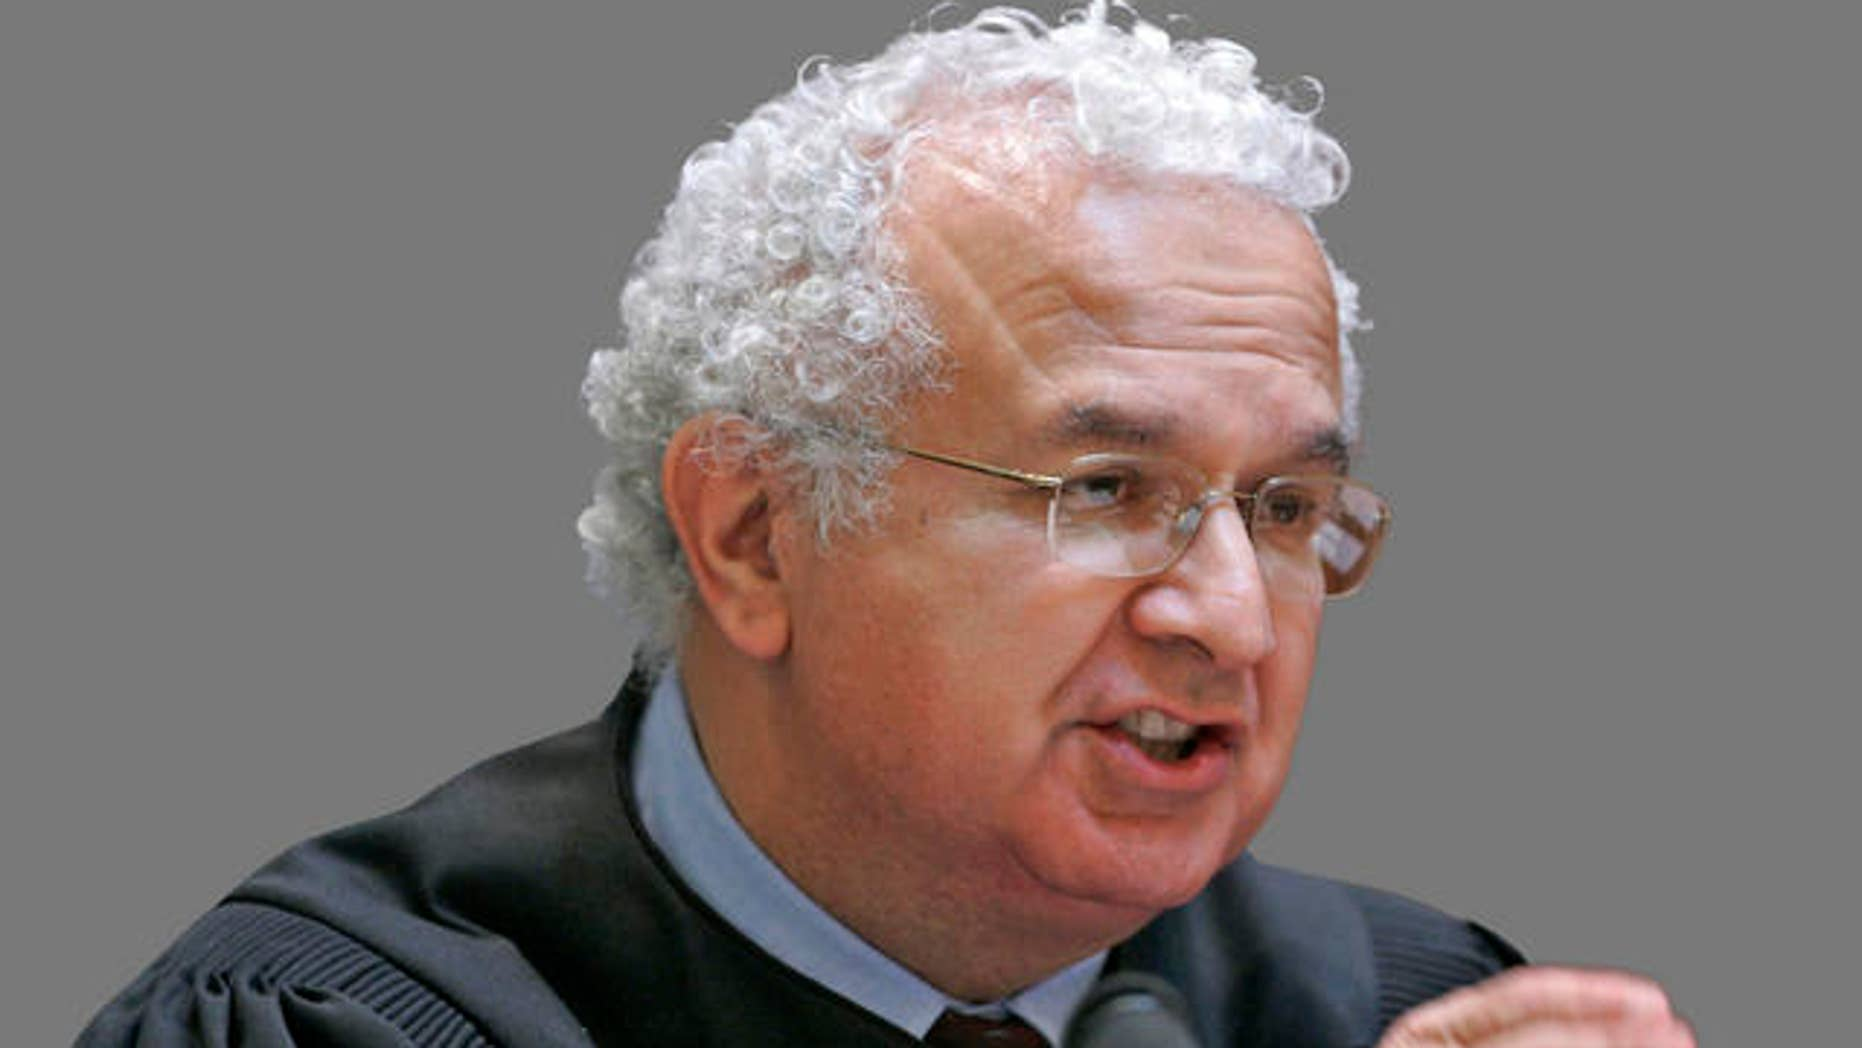 California Supreme Court Associate Justice Carlos R. Moreno in San Francisco, Tuesday, March 4, 2008. Gay marriage supporters and opponents are finished presenting arguments on whether California should join Massachusetts in legalizing same-sex marriages. The California Supreme Court heard more than 3½ hours of arguments Tuesday in six separate cases being heard jointly. The seven justices asked whether California already protects the civil rights of gay and lesbian couples through domestic partnerships. (AP Photo/Paul Sakuma, pool)